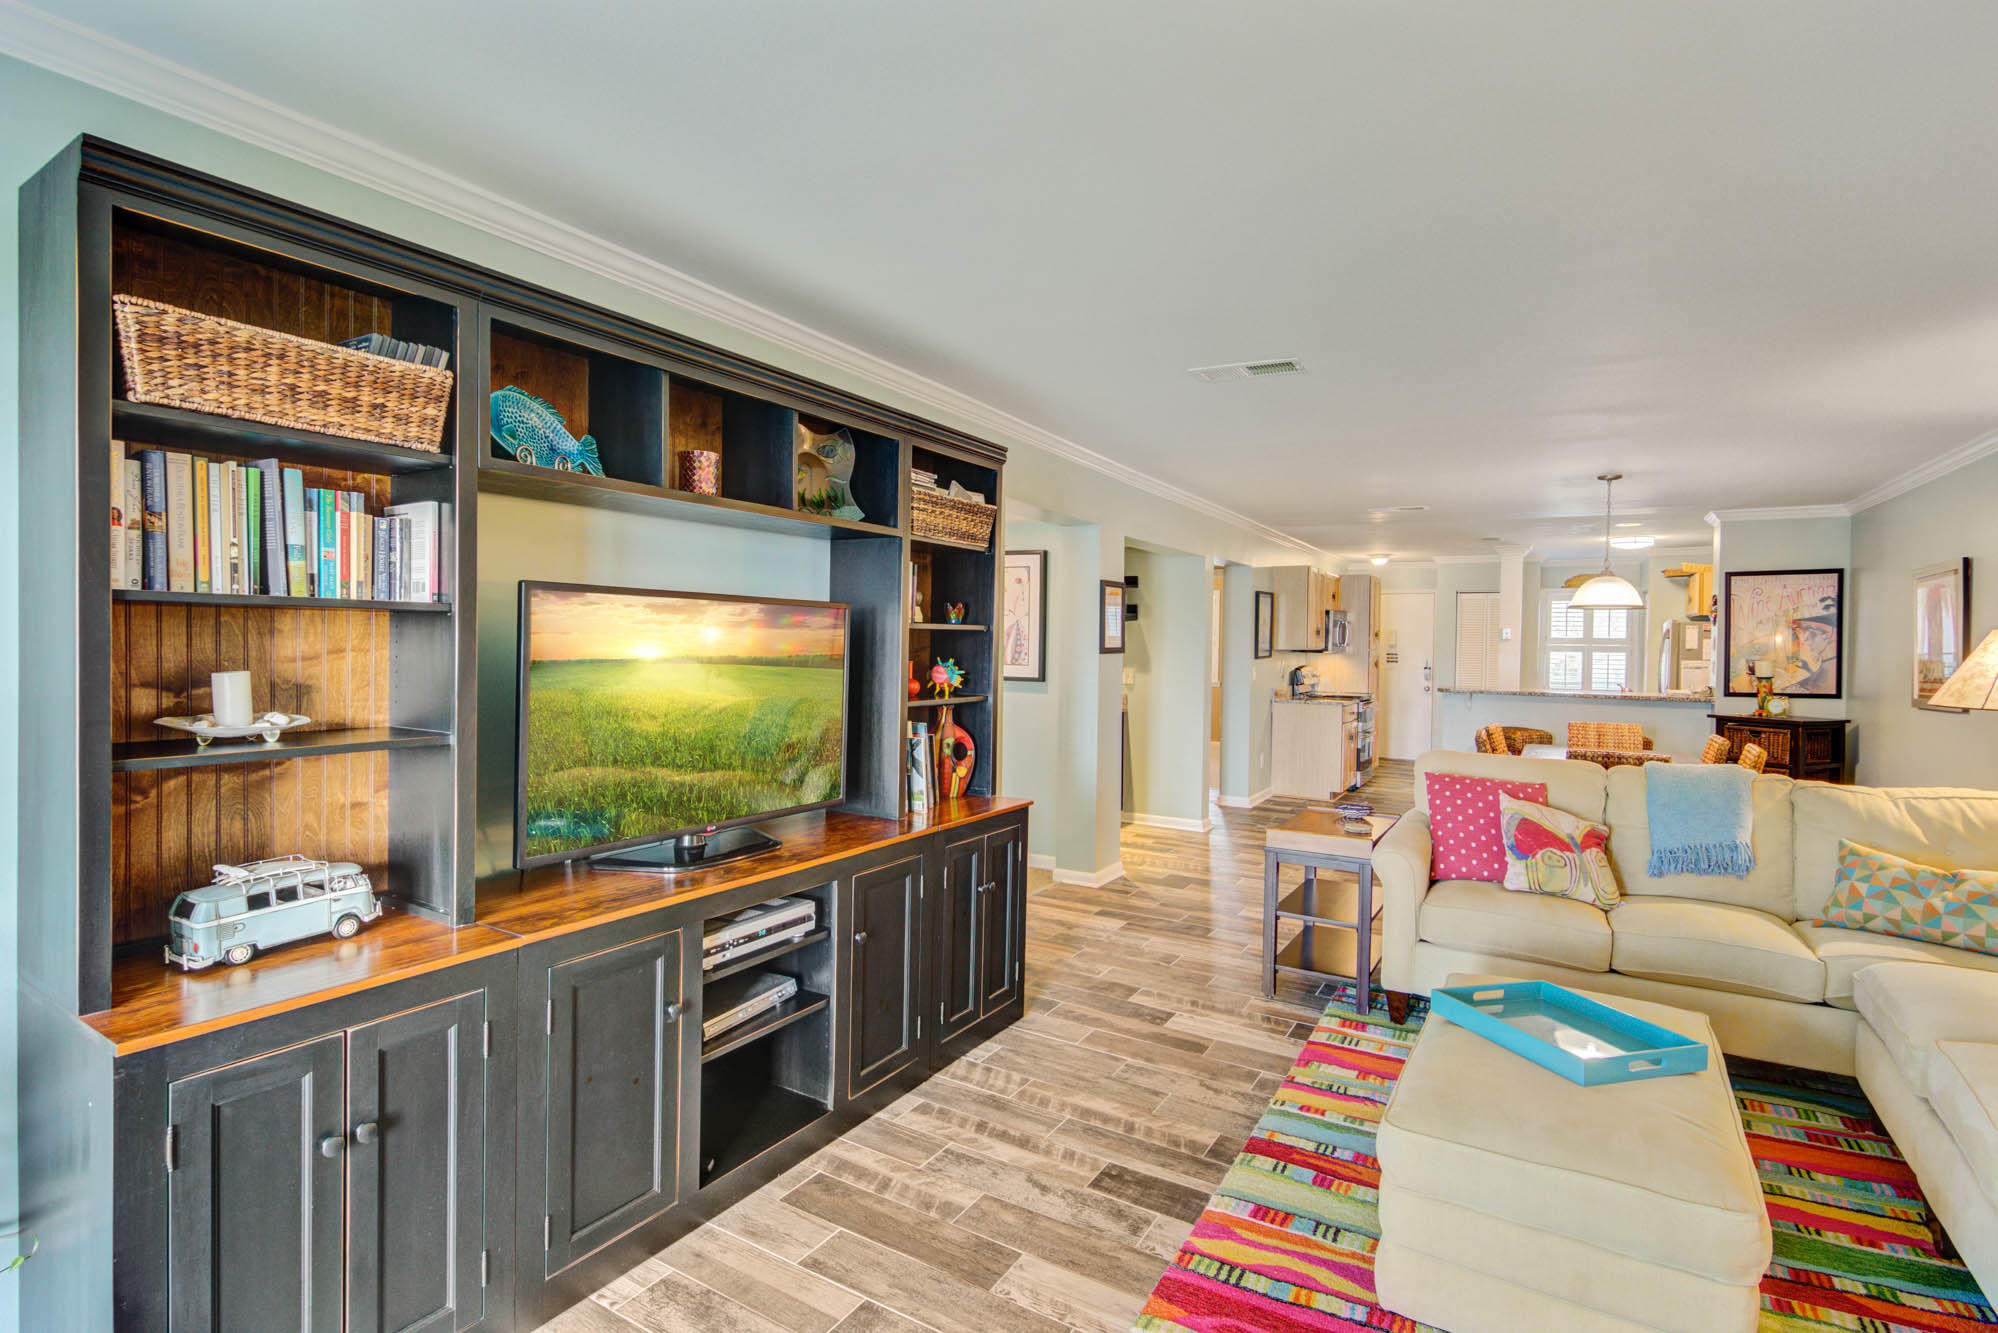 Mariners Cay Homes For Sale - 19 Mariners Cay, Folly Beach, SC - 8